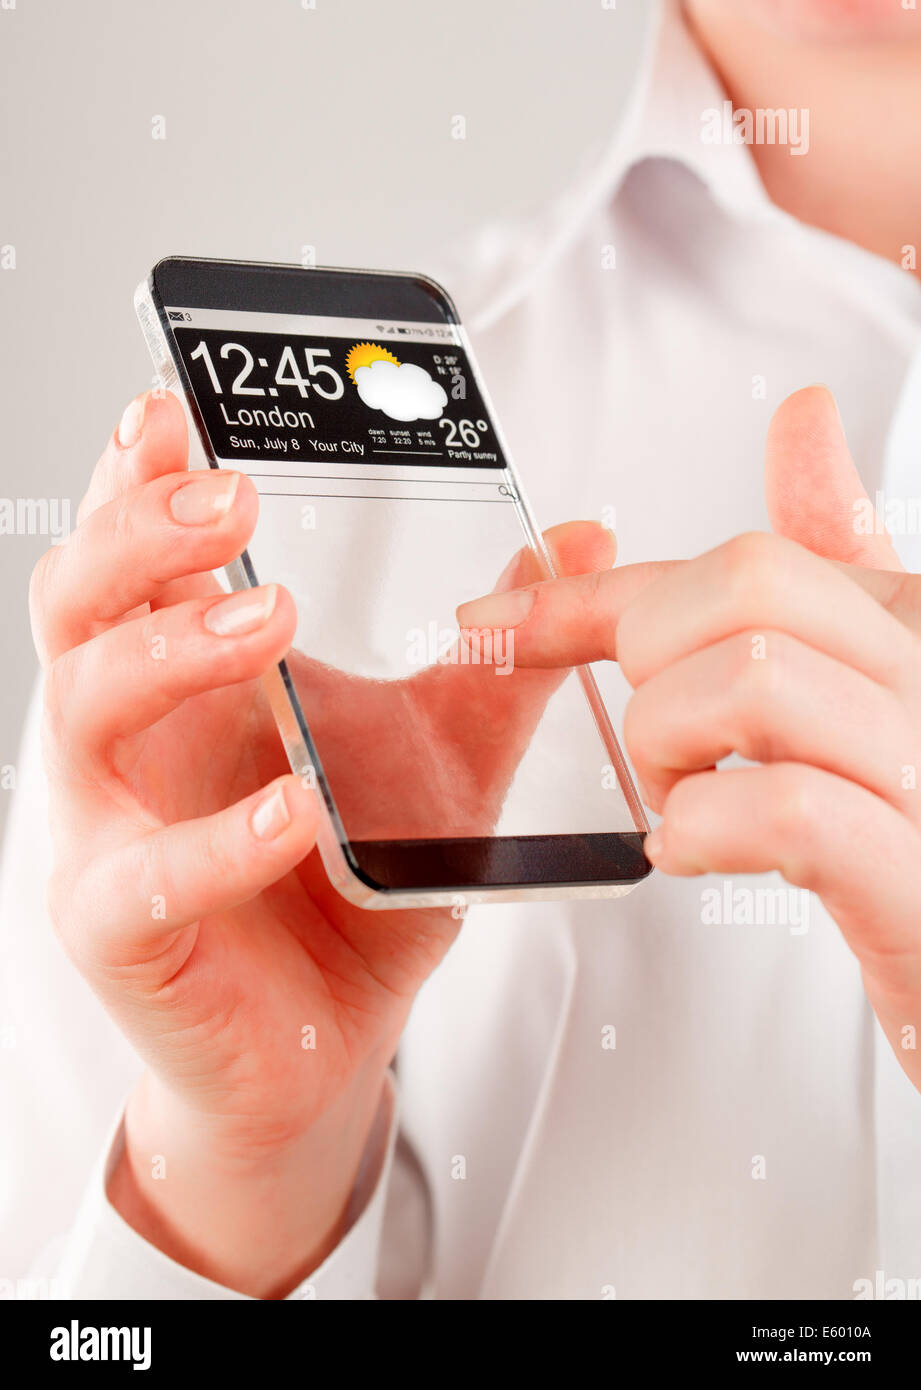 Futuristic Smart phone (phablet) with a transparent display in human hands. Concept actual future innovative ideas - Stock Image